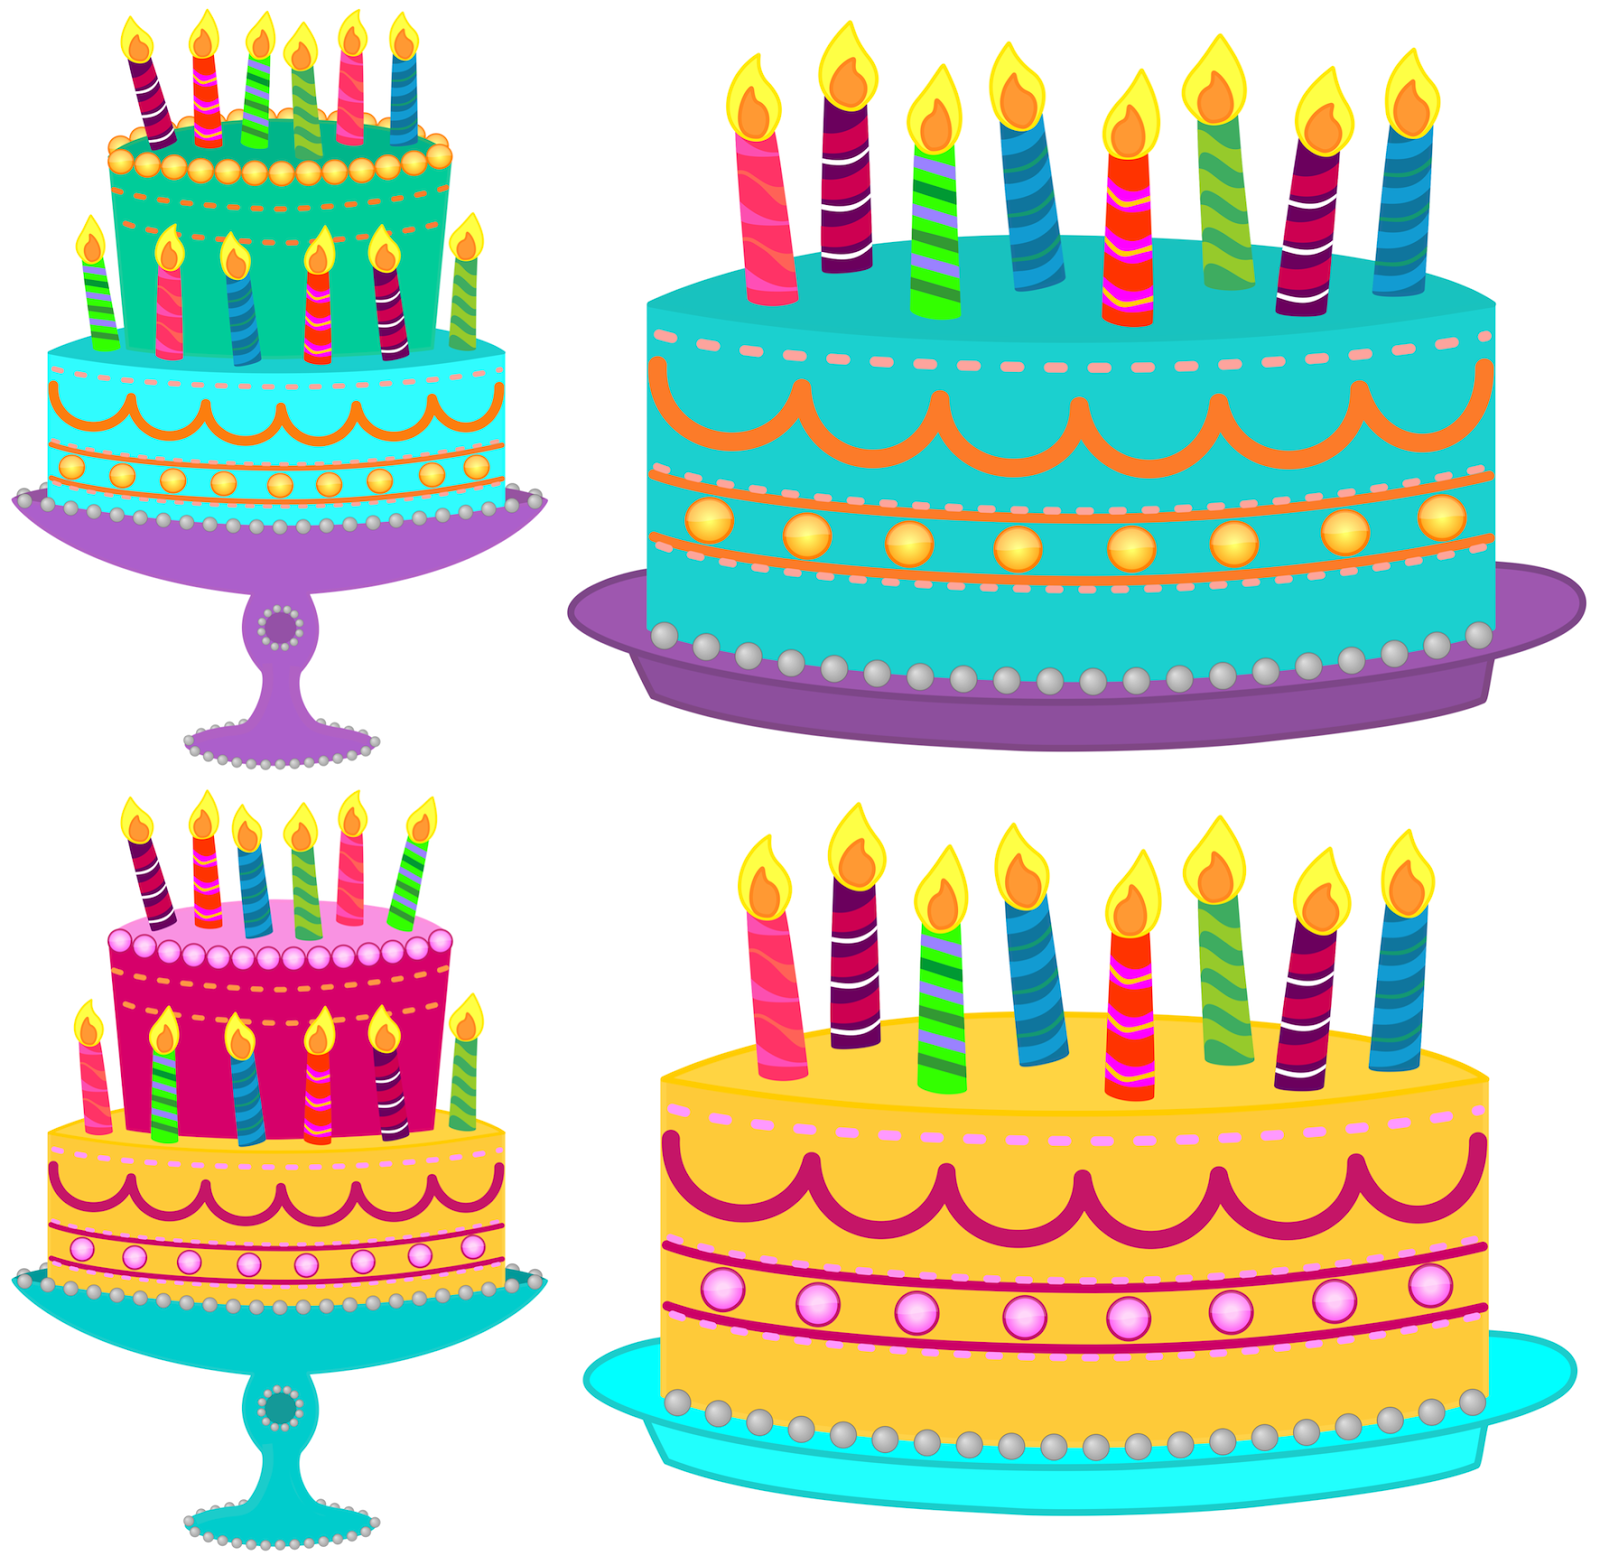 Pastry clipart candle Or Clipart birthday Cake Code